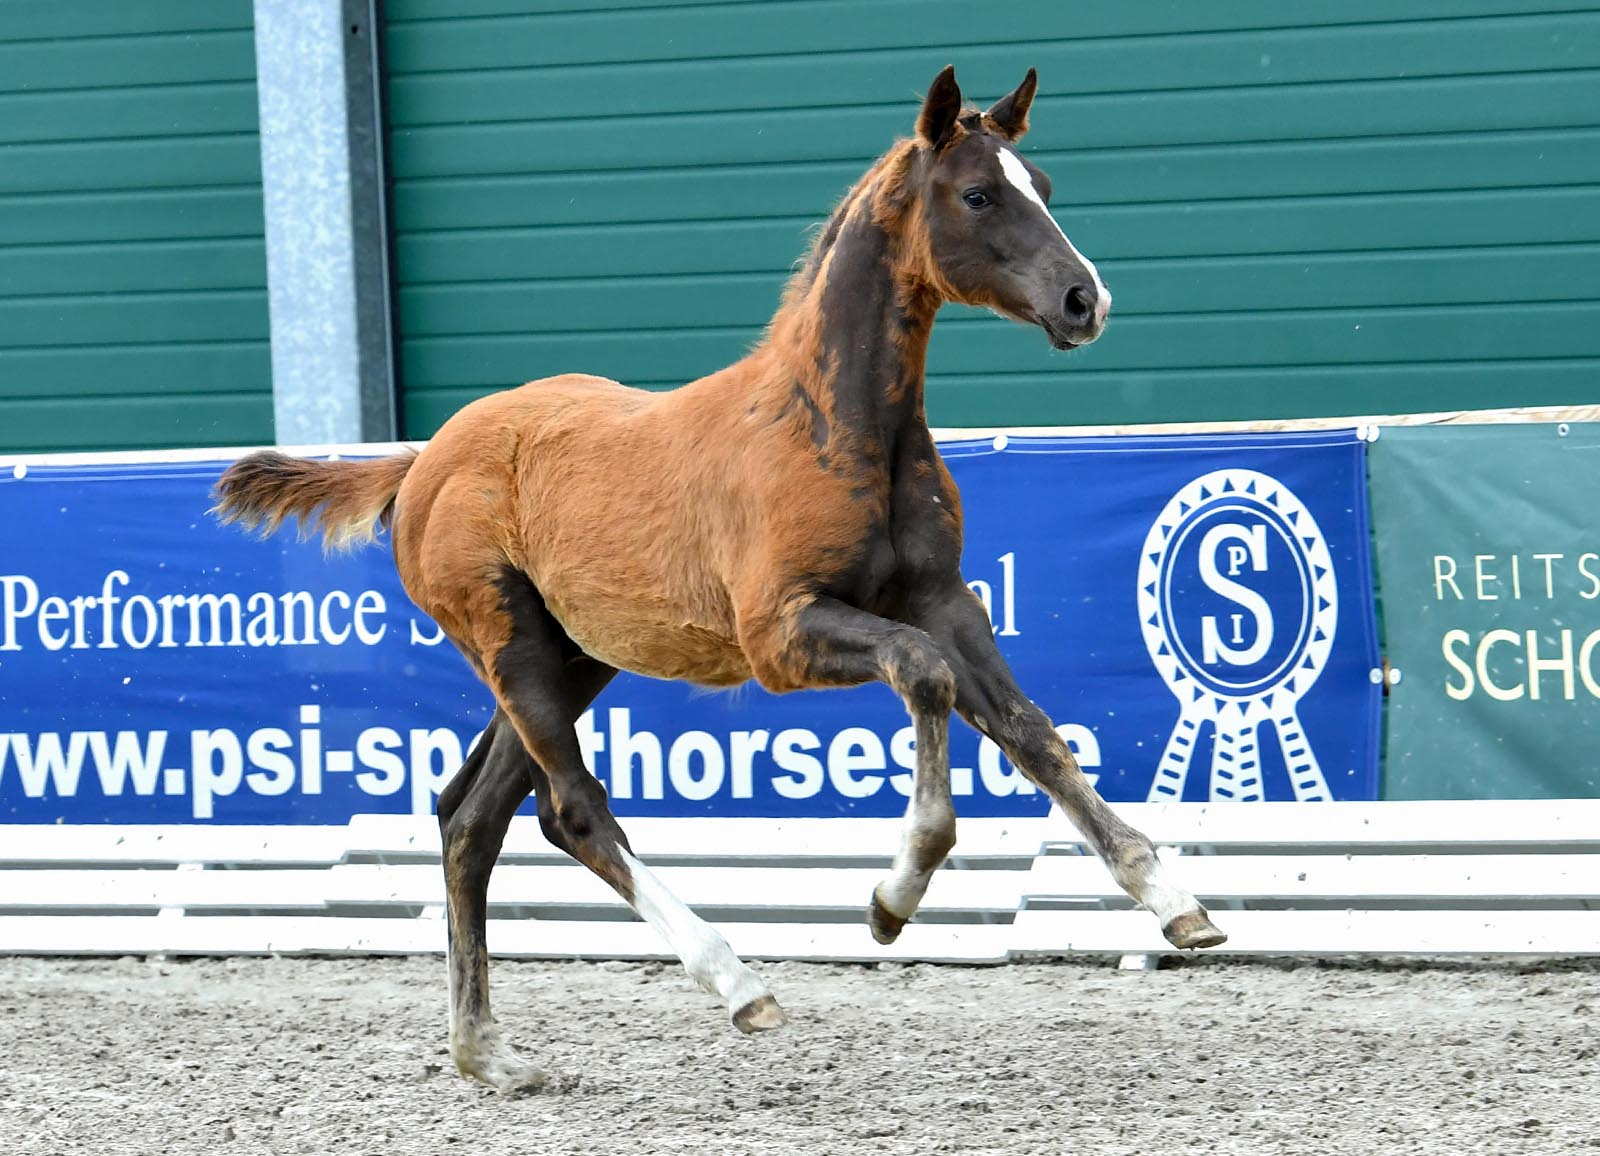 The new auction of Schockemöhle and Helgstrand bundles foals of the highest quality